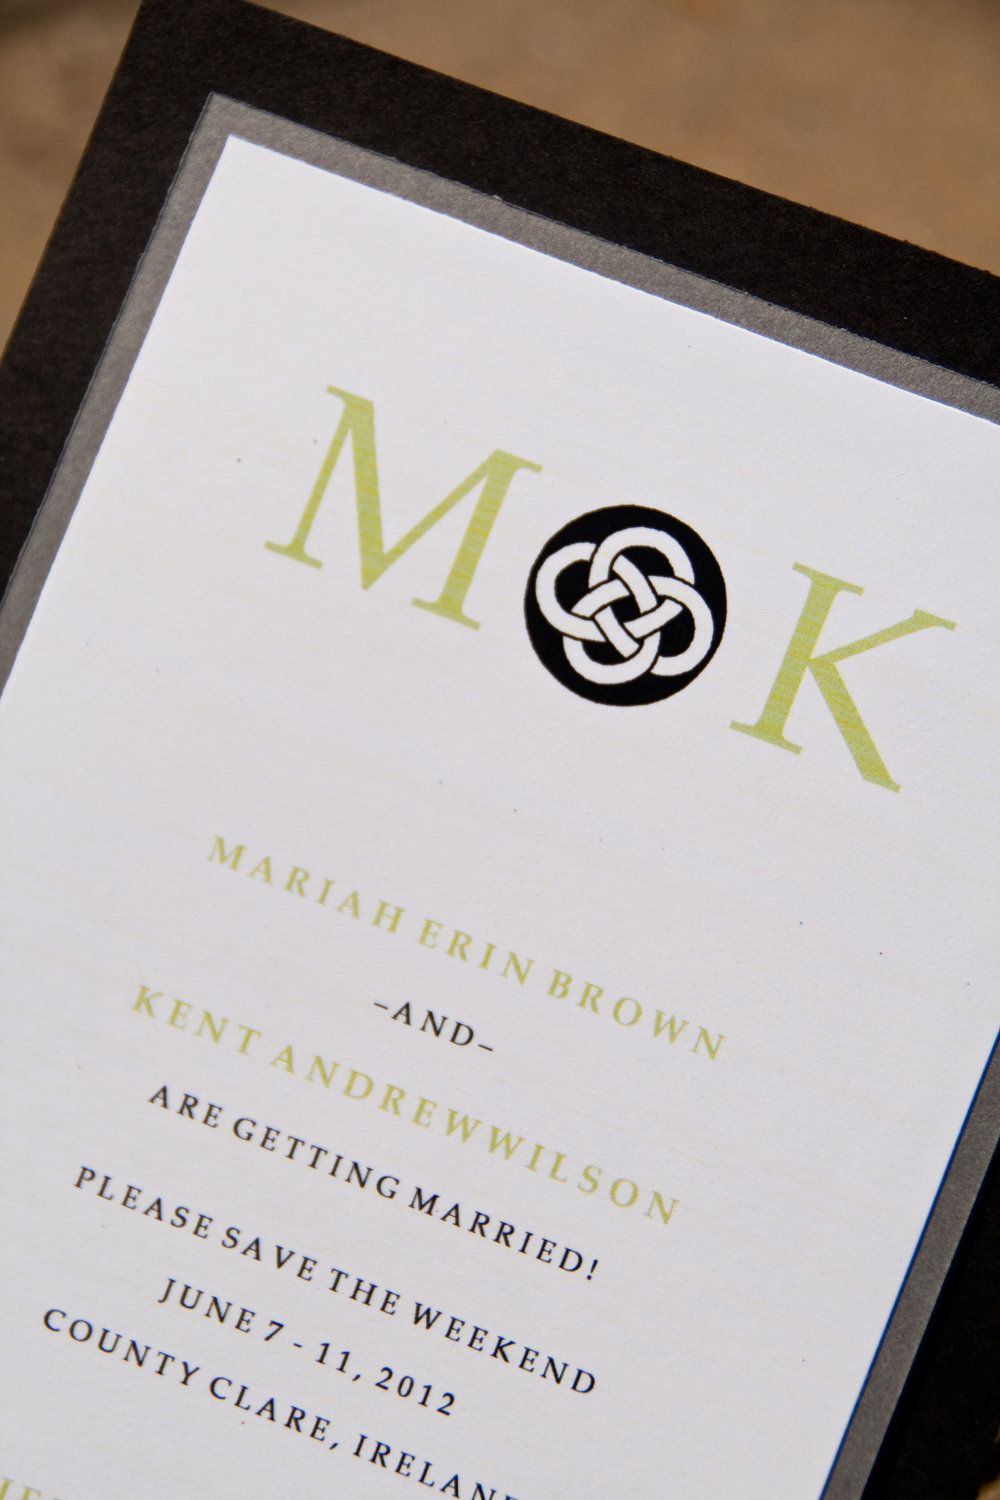 Celtic Knot Wedding Save The Date Invitation Monogram Set Of 50 By Belleza E Luce